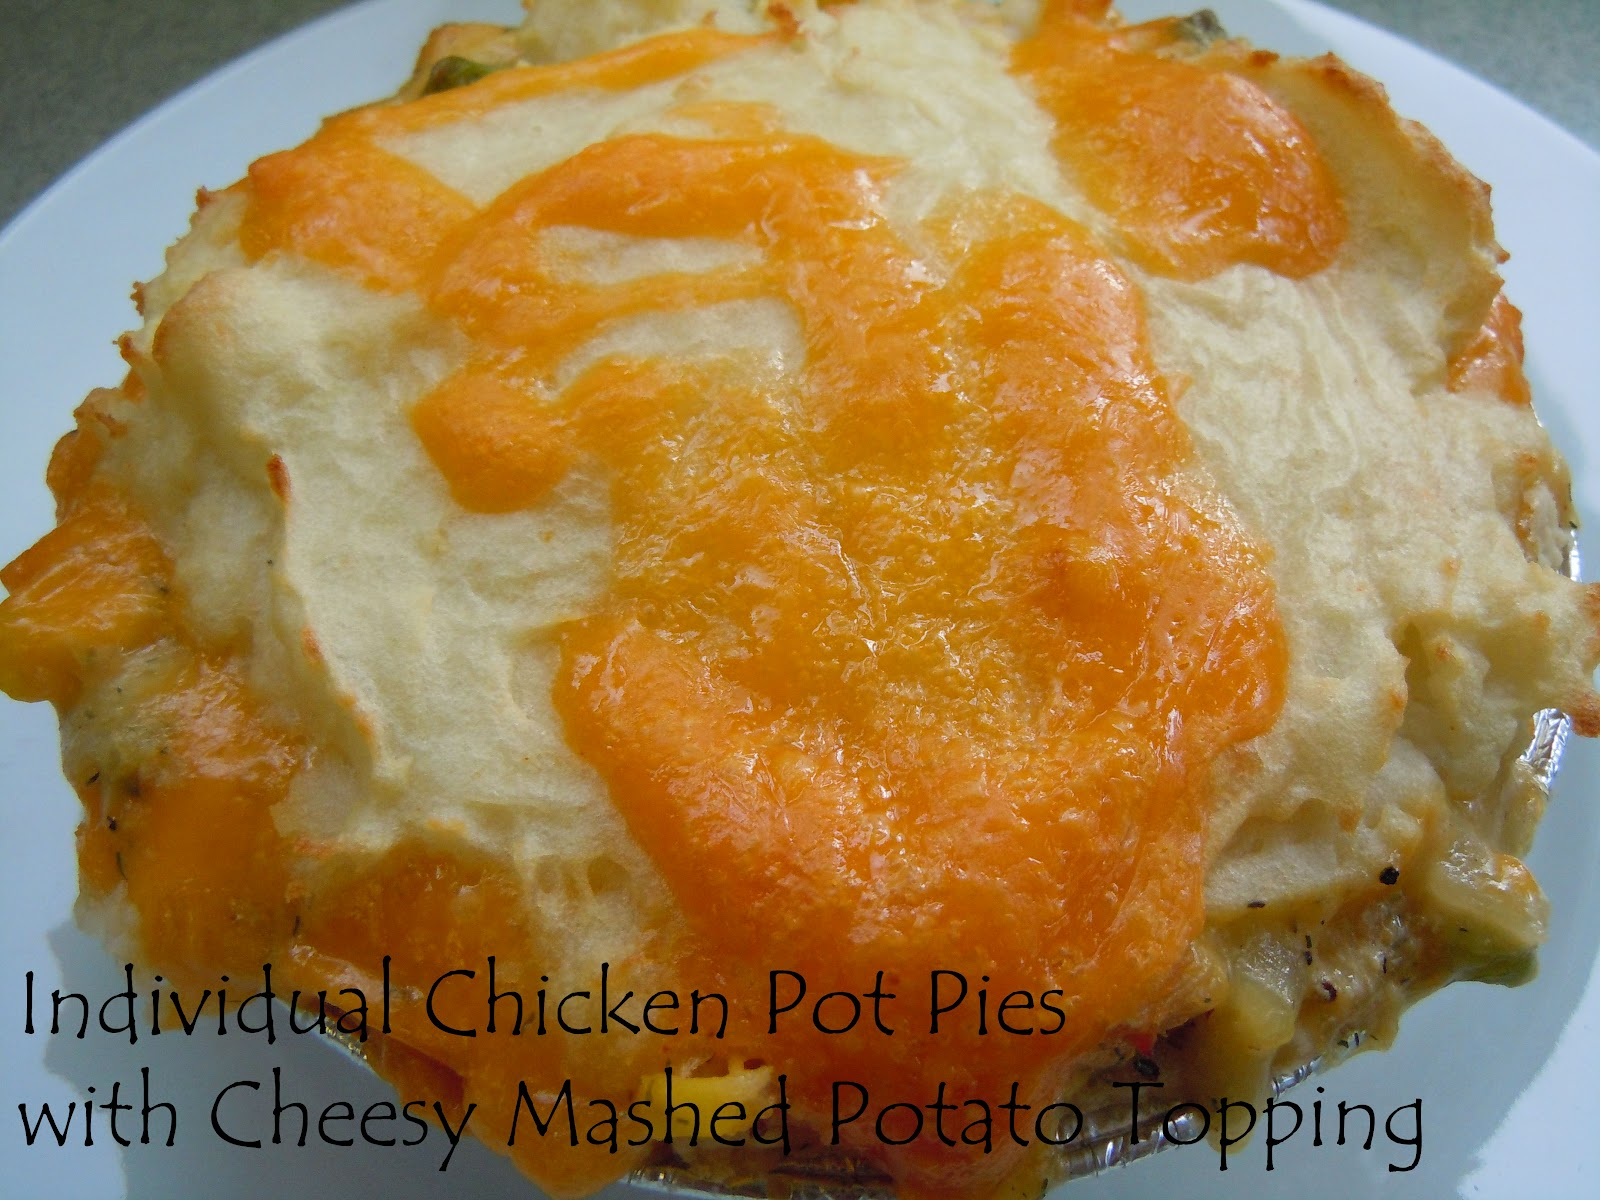 how to make individual chicken pot pies